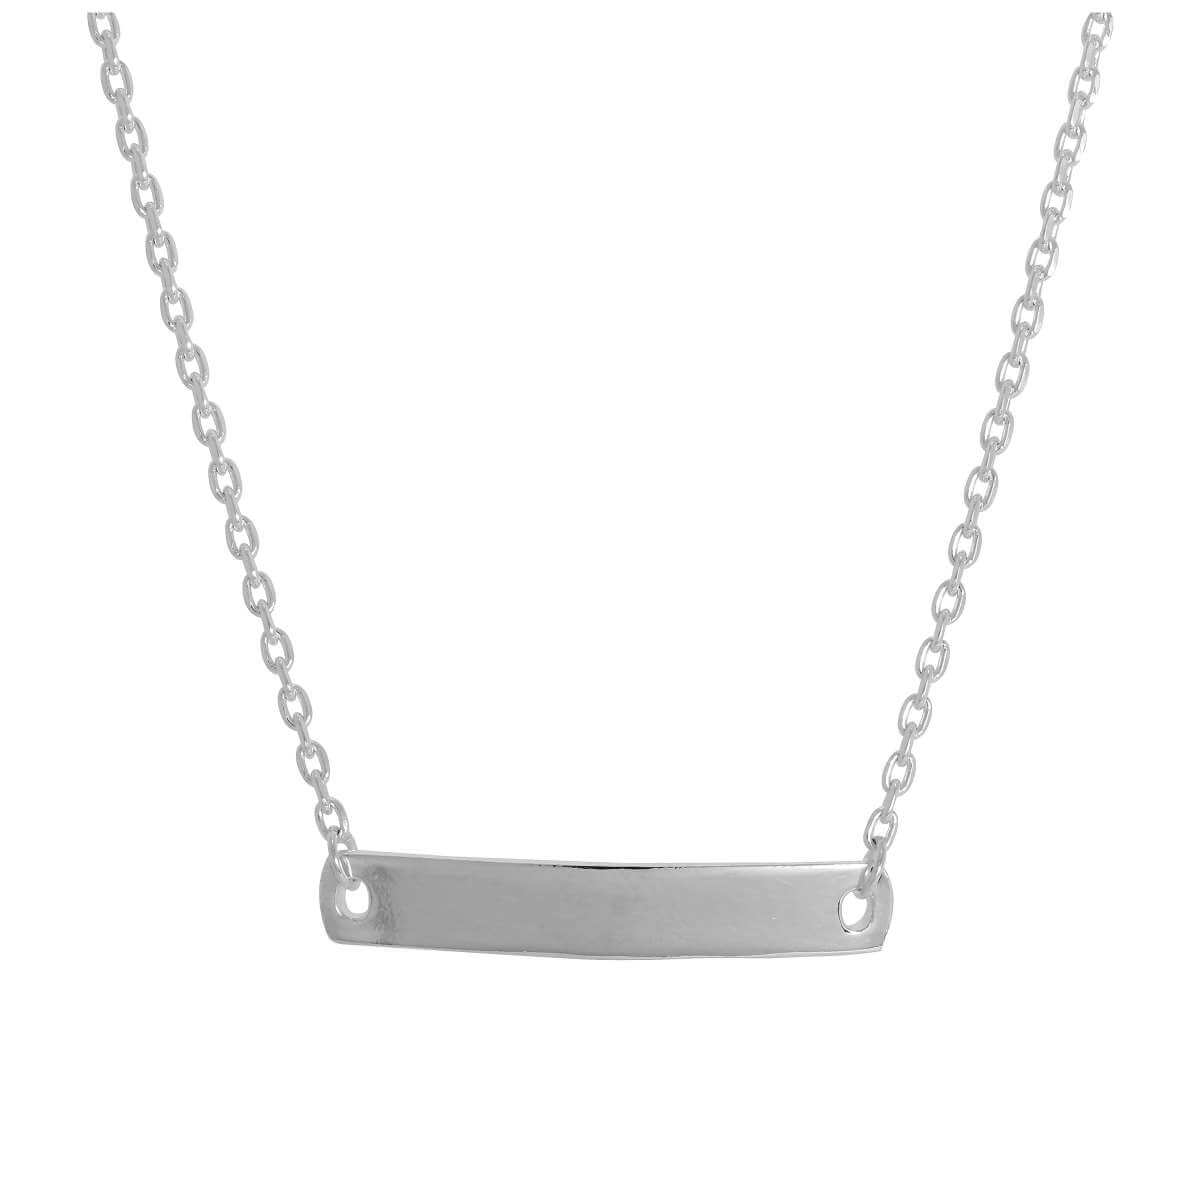 Sterling Silver 16 Inch Necklace with Curved Engravable Bar